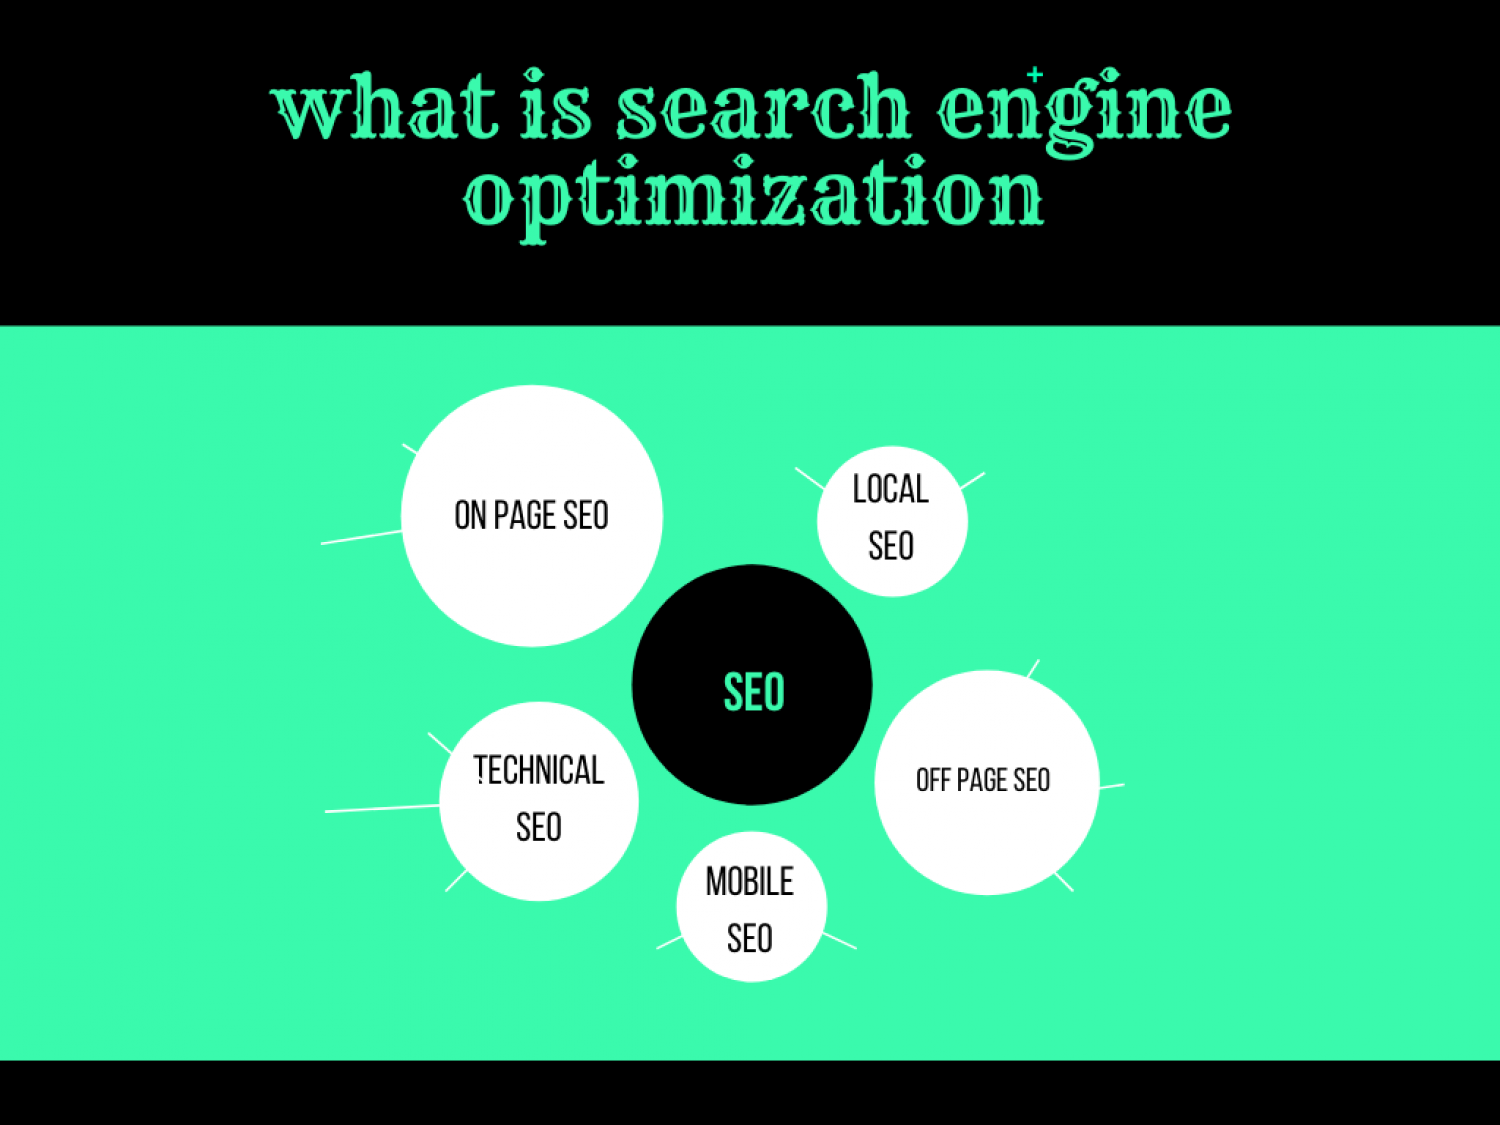 SEARCH ENGINE OPTIMIZATION Infographic